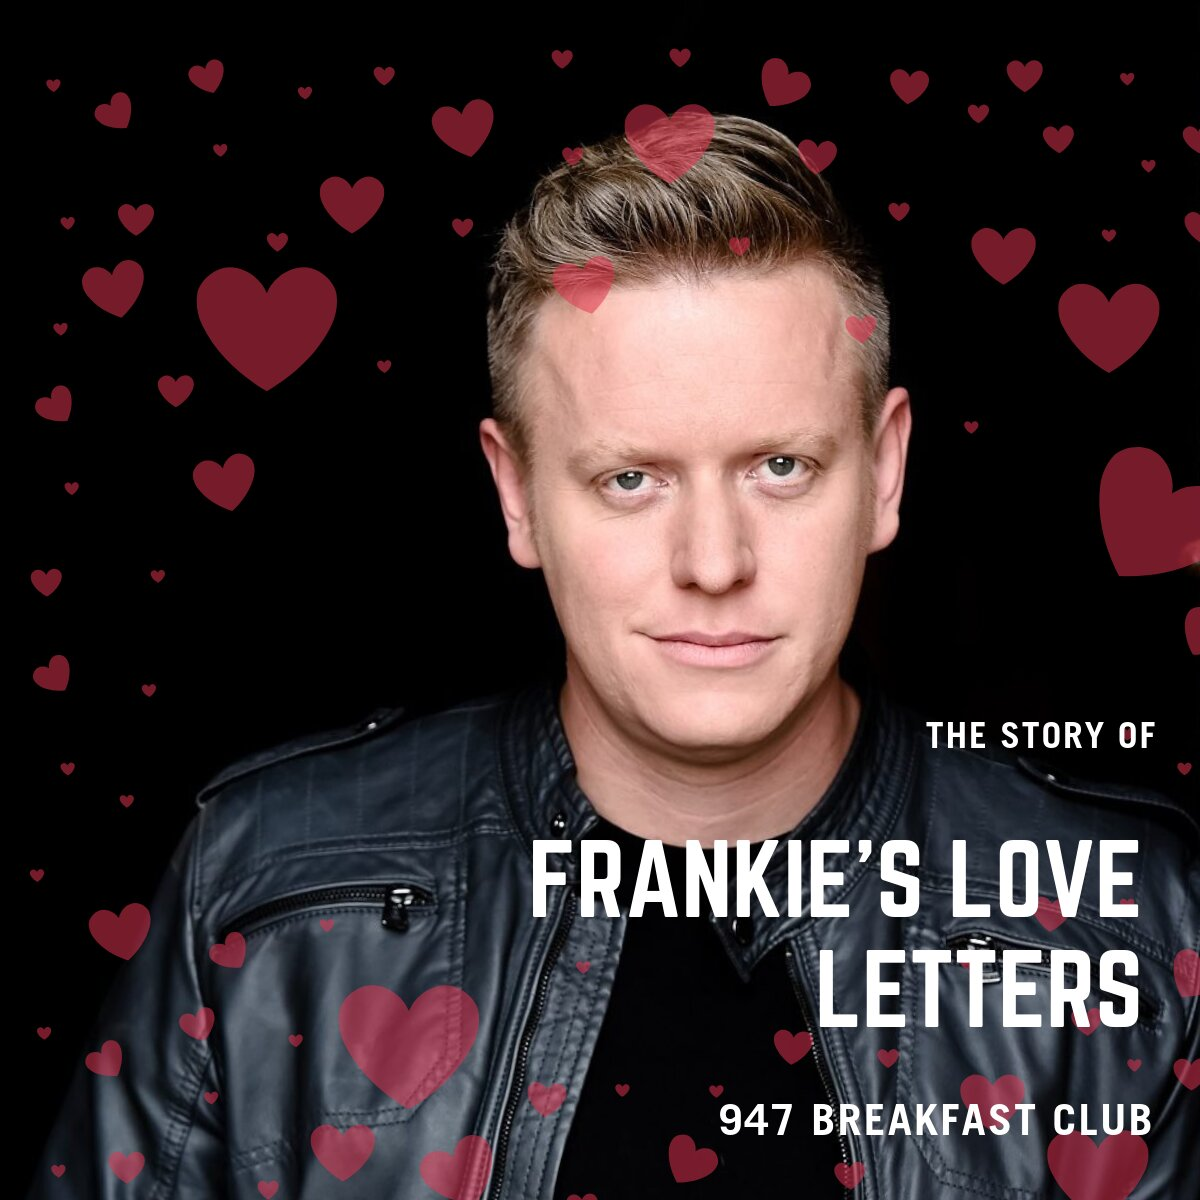 The story of Frankie's old love letters: Letter to Frans...